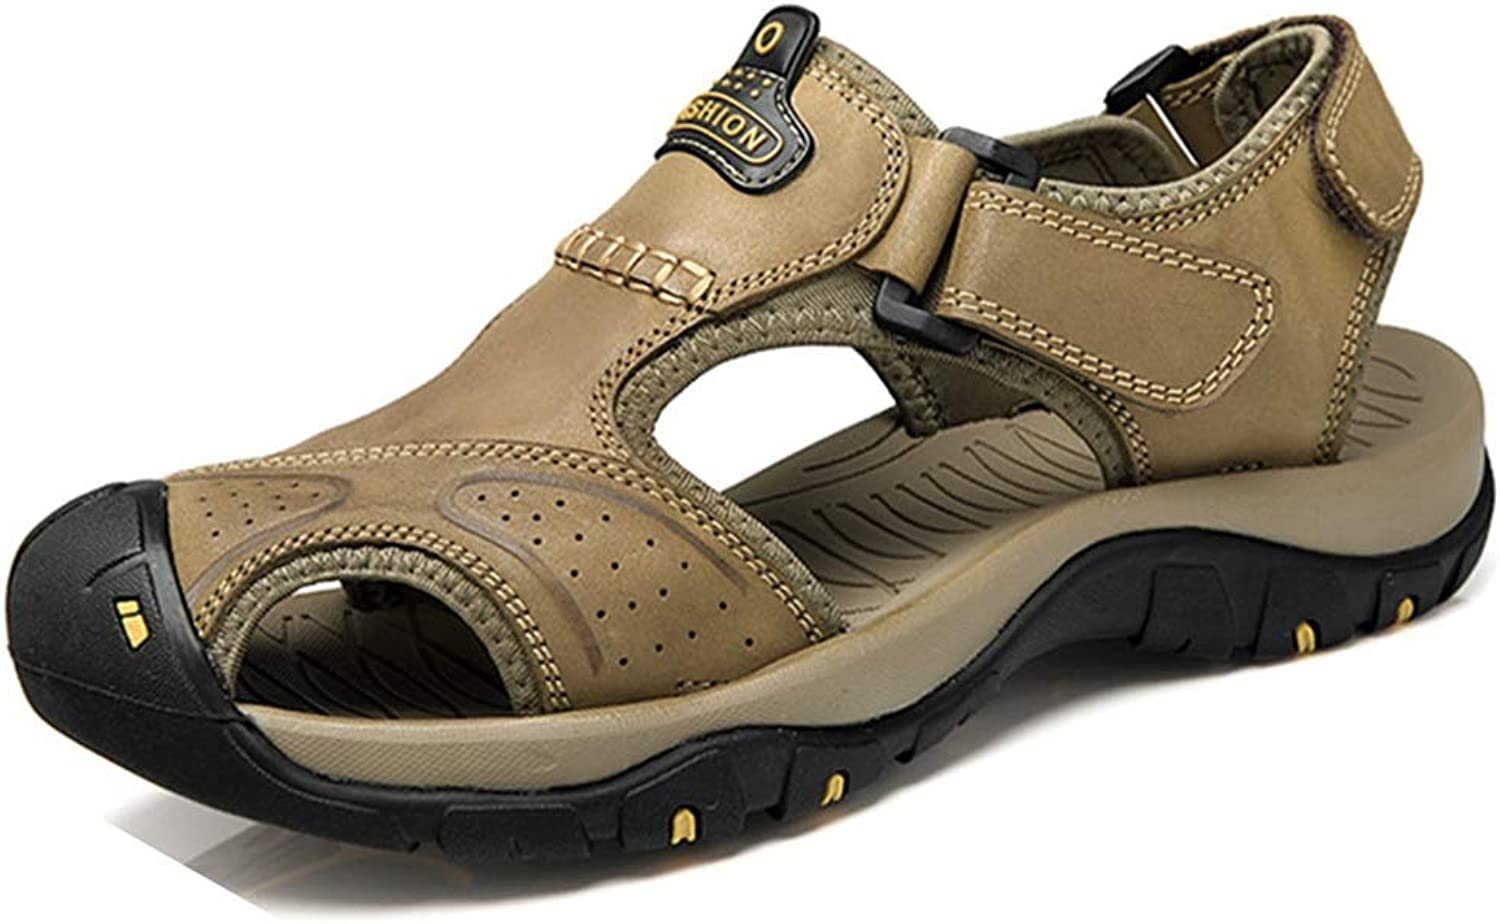 ChengxiO 2019 Sandals Men's Beach shoes Outdoor Sports Casual Men's Sandals Men's Large Size Men's shoes First Layer Leather Sandals (color   Dark Brown, Size   245mm)